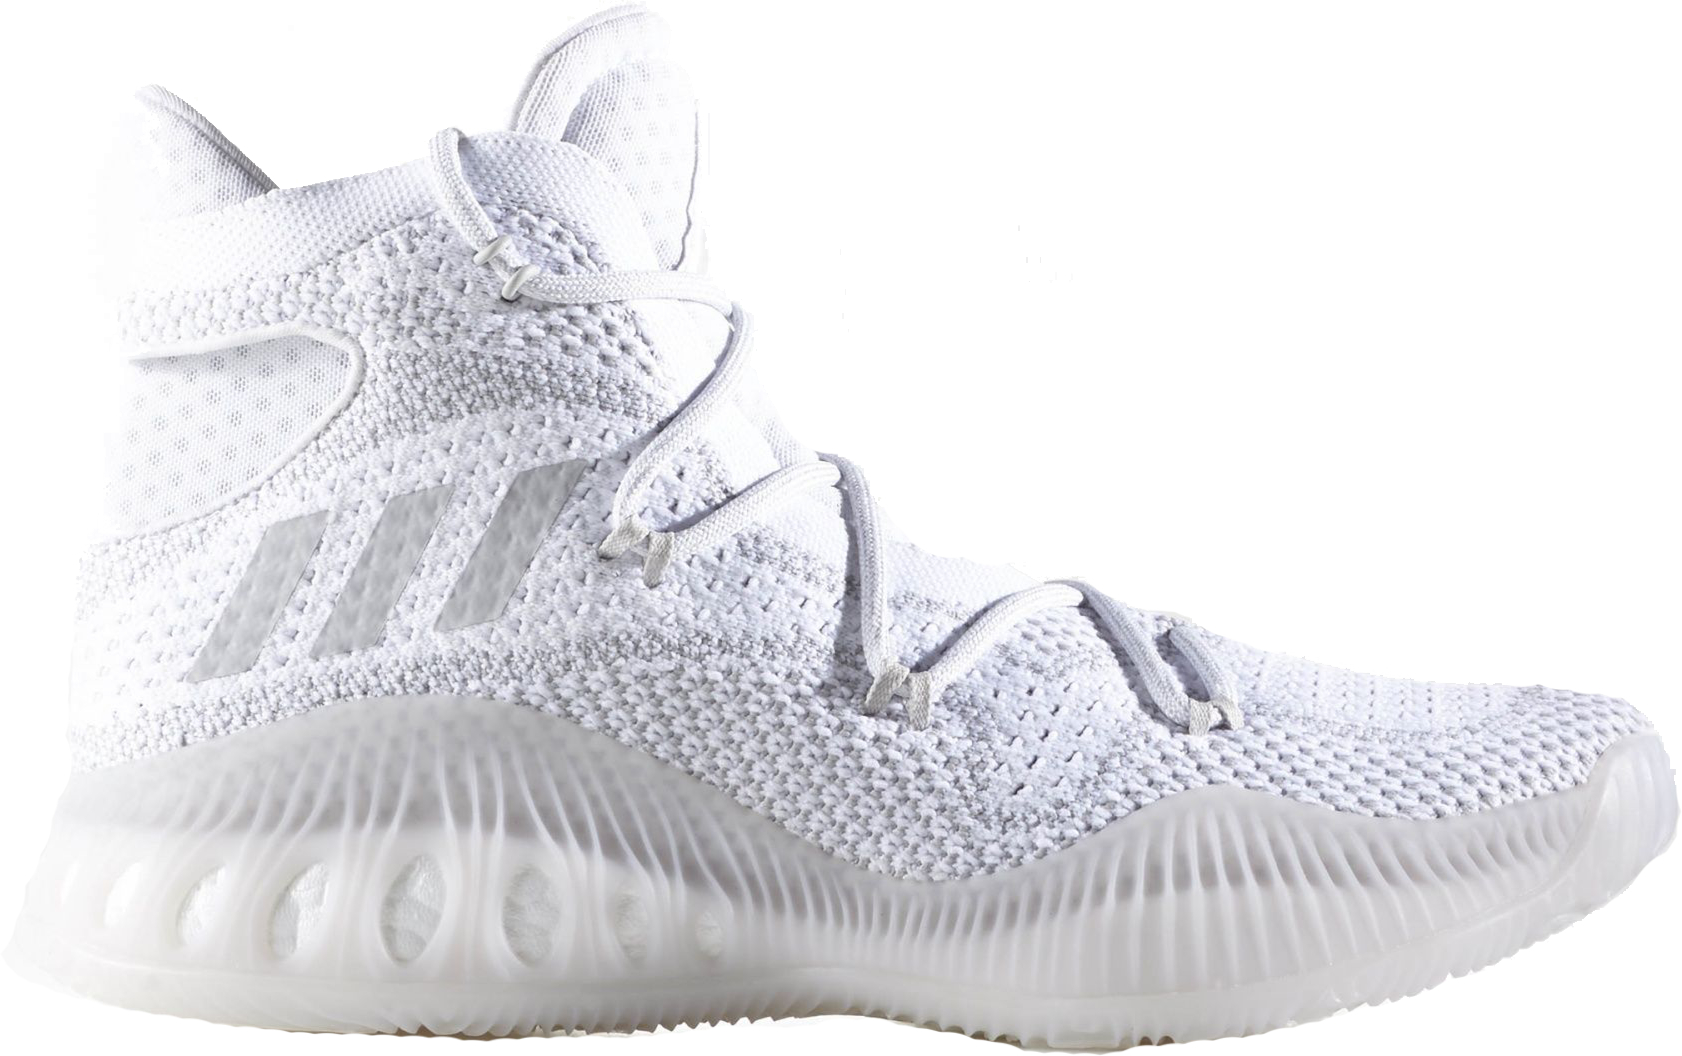 adidas Crazy Explosive Swaggy P All White